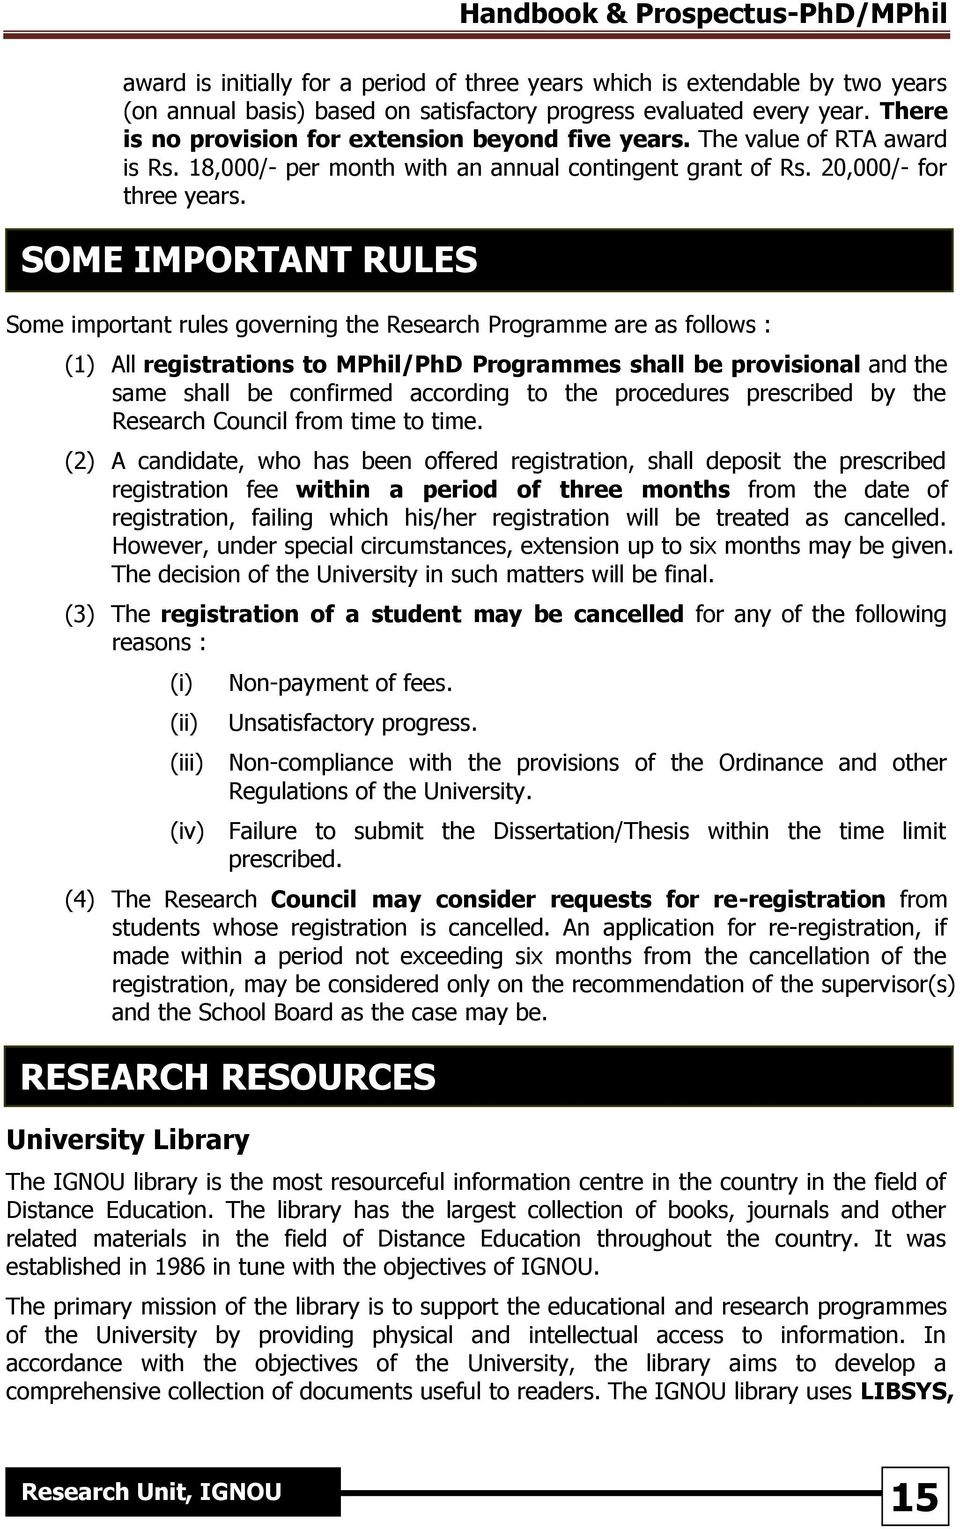 SOME IMPORTANT RULES Some important rules governing the Research Programme are as follows : (1) All registrations to MPhil/PhD Programmes shall be provisional and the same shall be confirmed